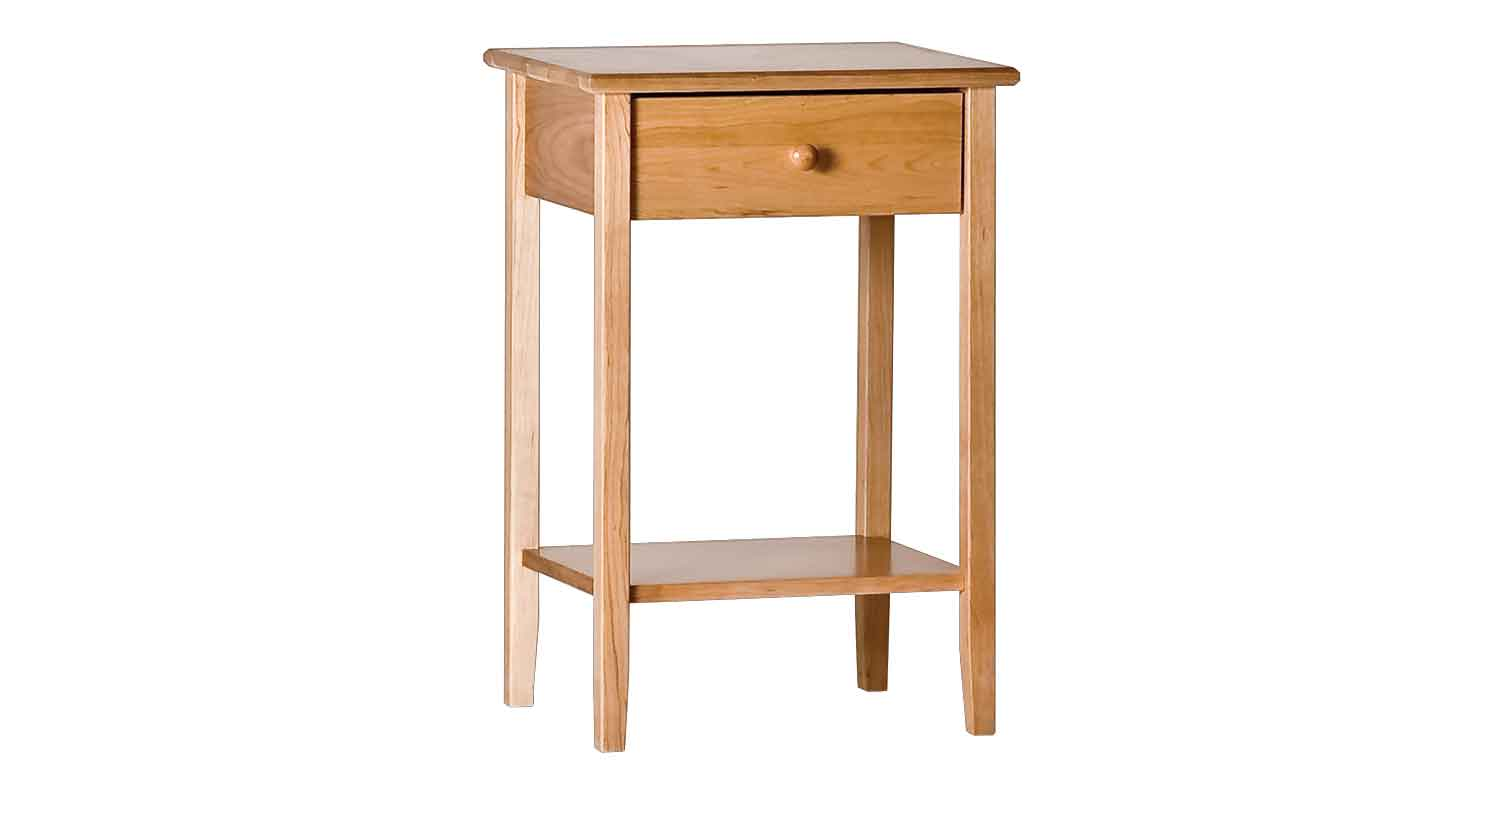 circle furniture shaker tall side table accent tables end pewter inch wide nightstand secretary desk matching coffee and tiffany lamp base timber brisbane carpet transition piece